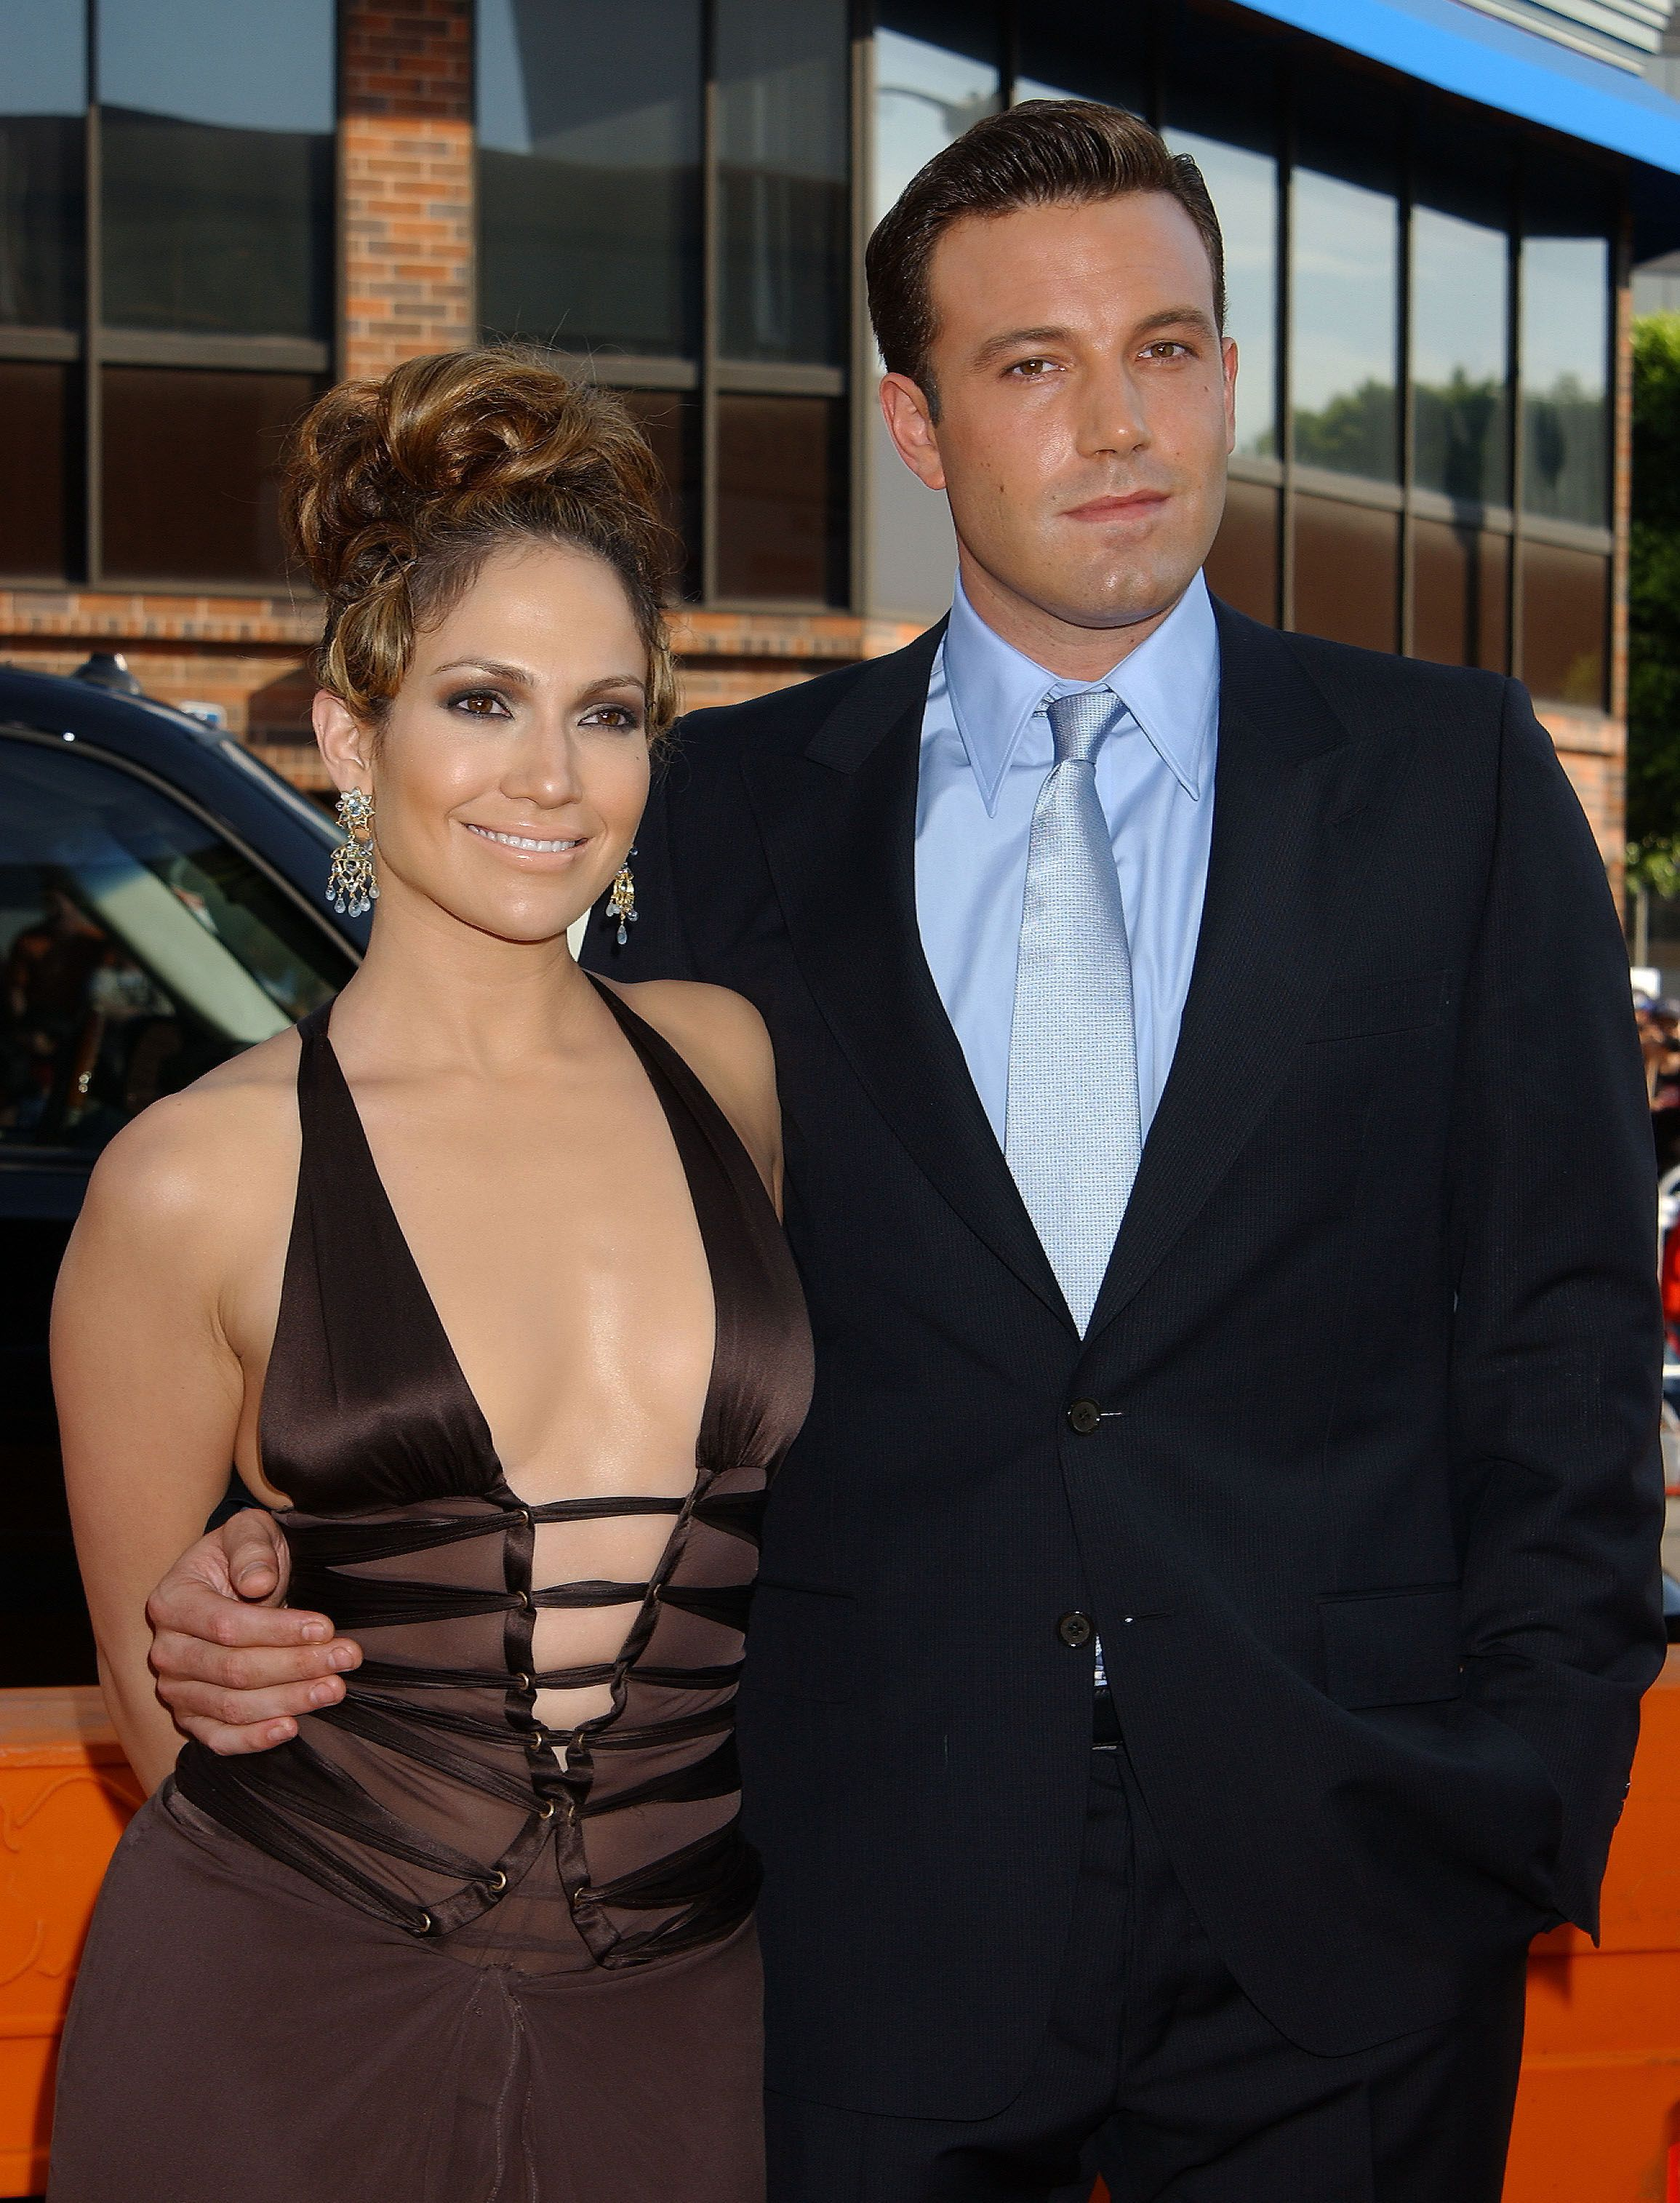 J.Lo and Ben Affleck Were Caught Fully Making Out at a Party